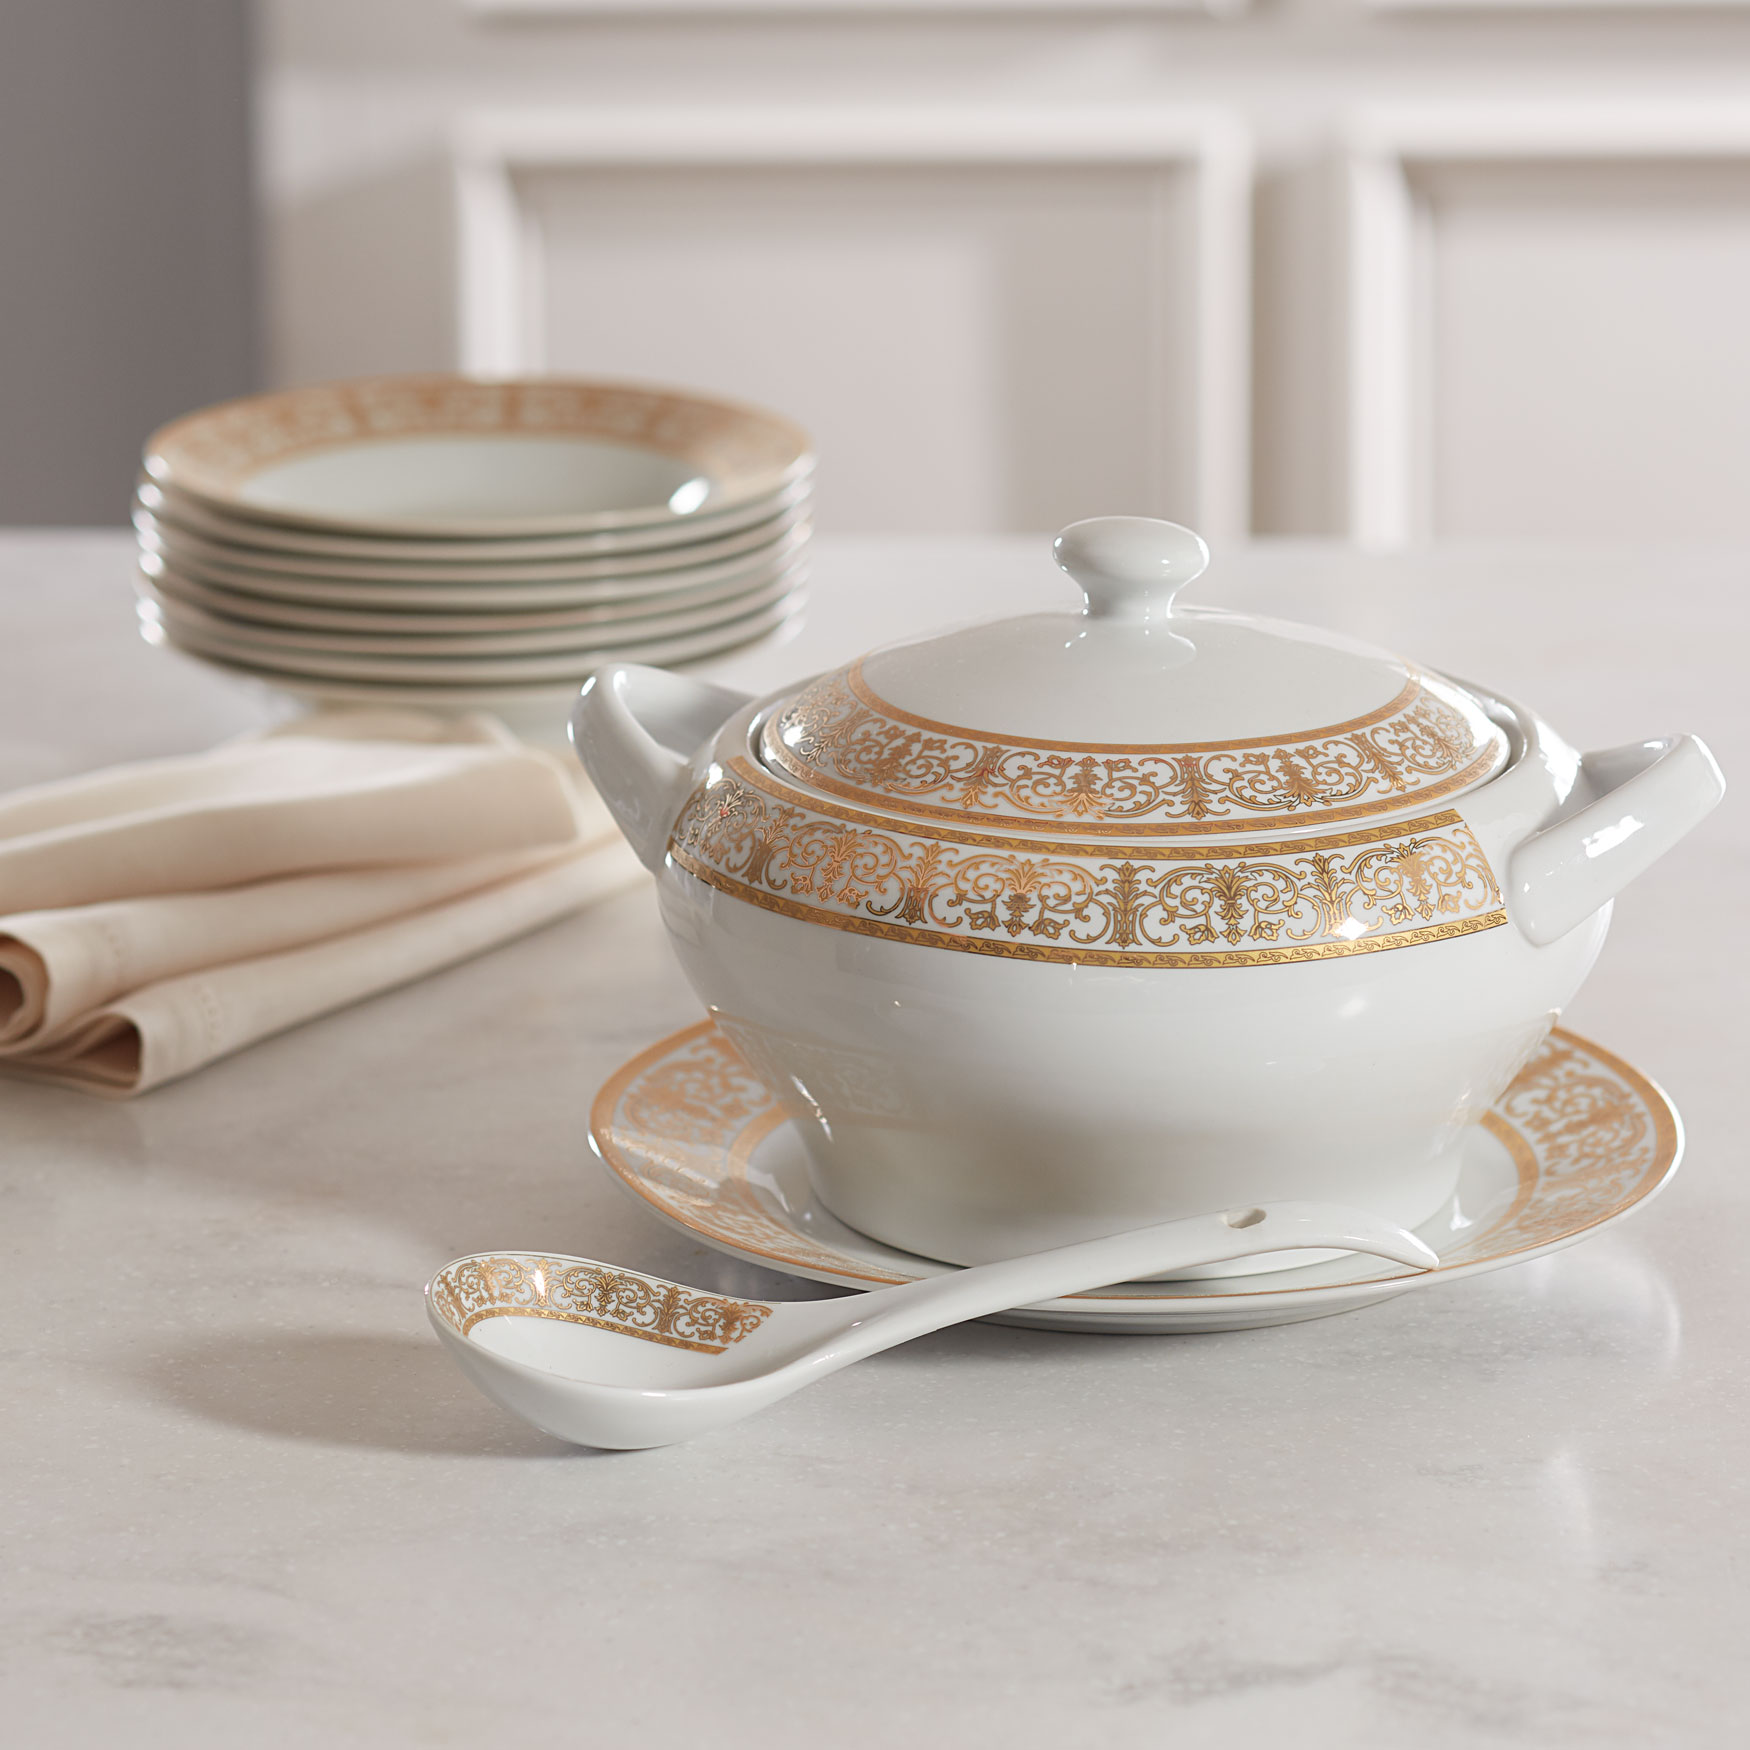 Medici 4-Pc. Porcelain Soup Tureen Set, GOLD WHITE